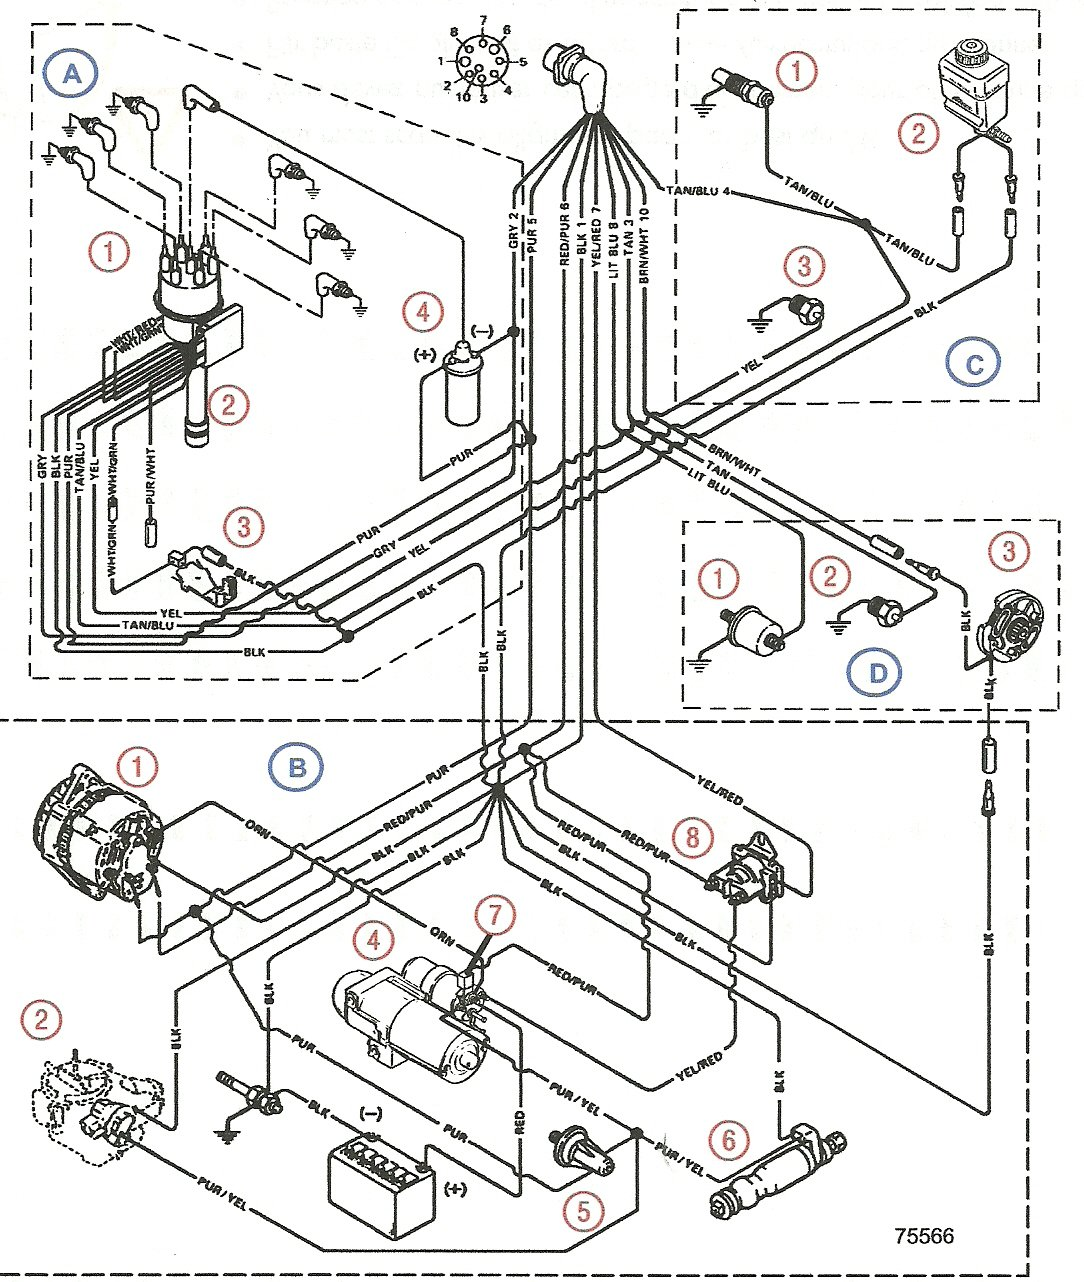 Mercruiser 5.7 Engine Wiring Diagram from schematron.org